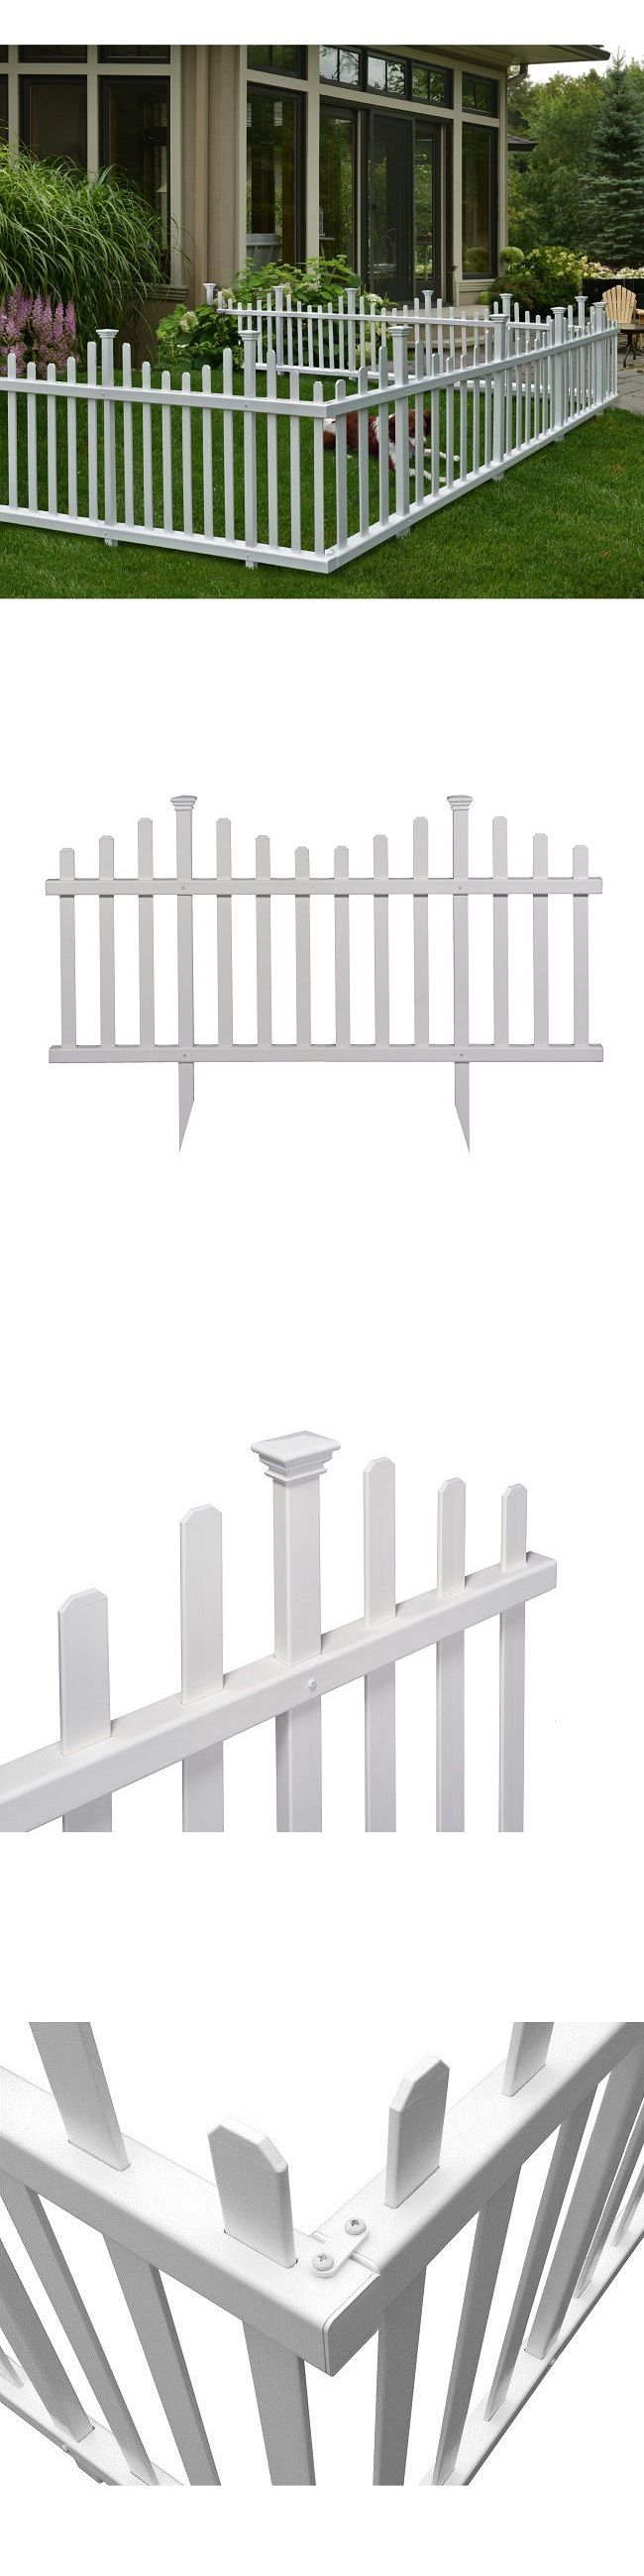 Fence Panels 139946: Garden Fence Fencing White Picket No Dig Vinyl Outdoor Kit Border -> BUY IT NOW ONLY: $104.61 on eBay!